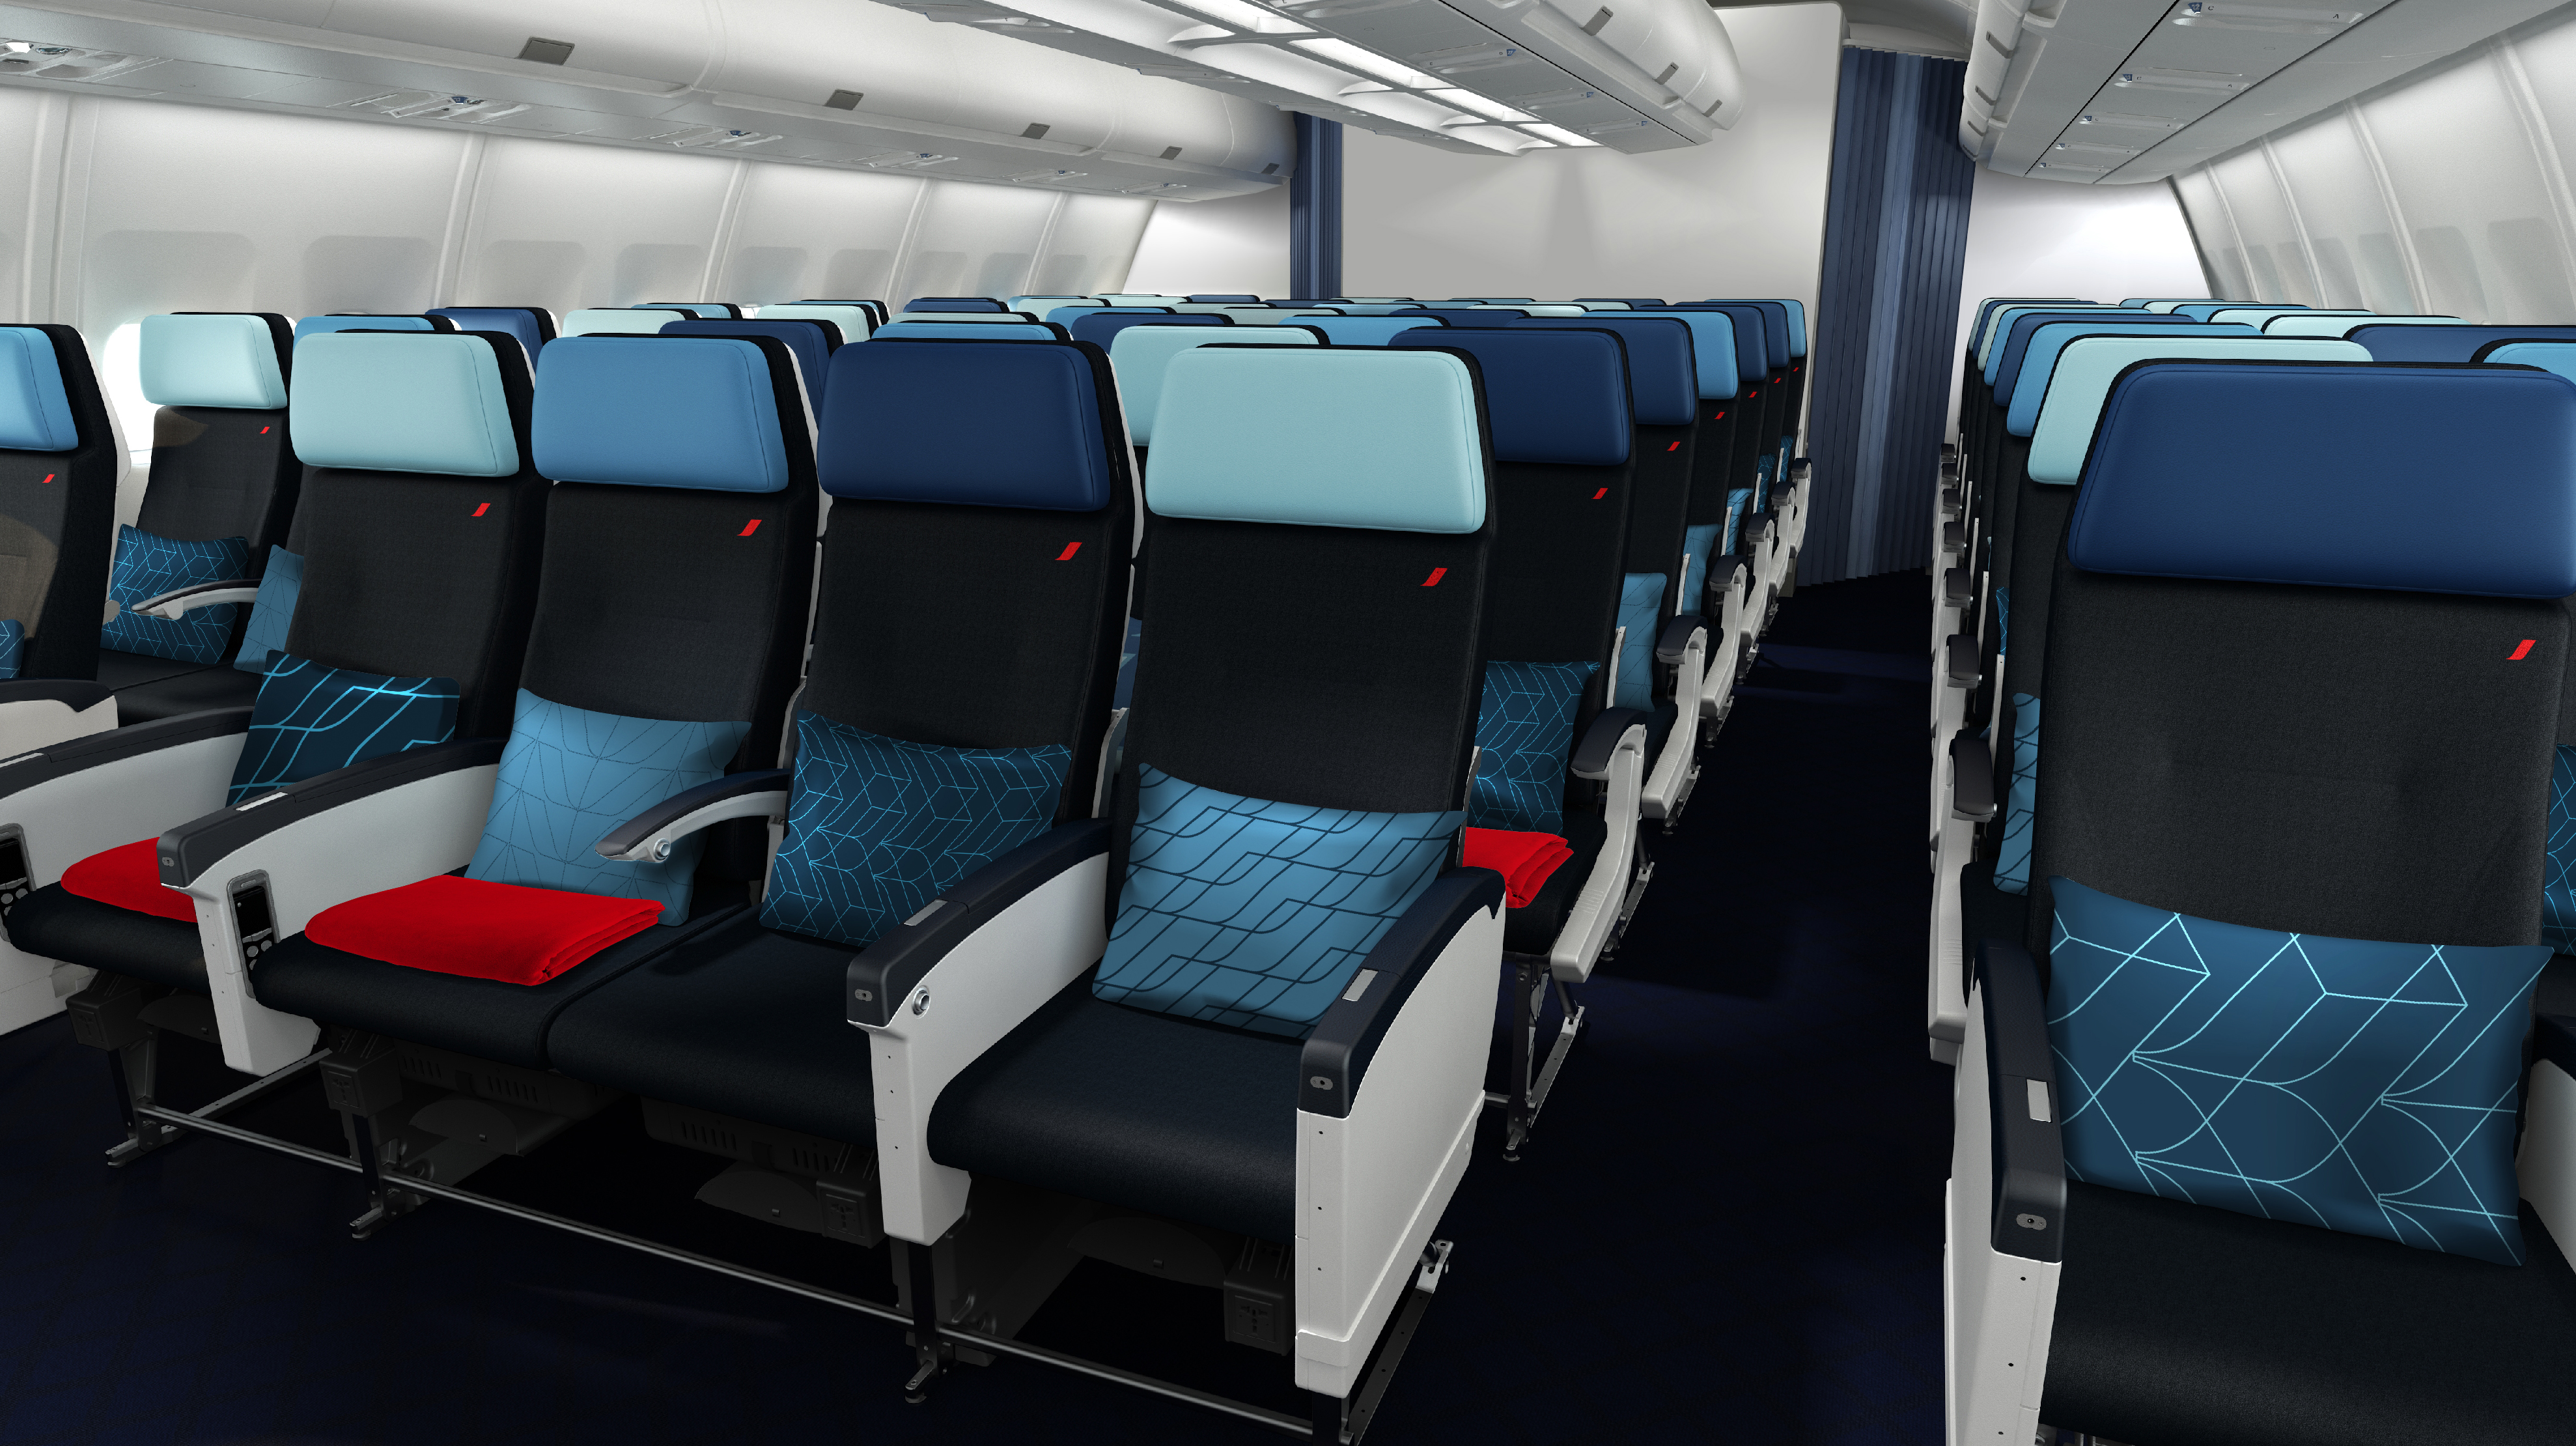 Air France A330 economy seat